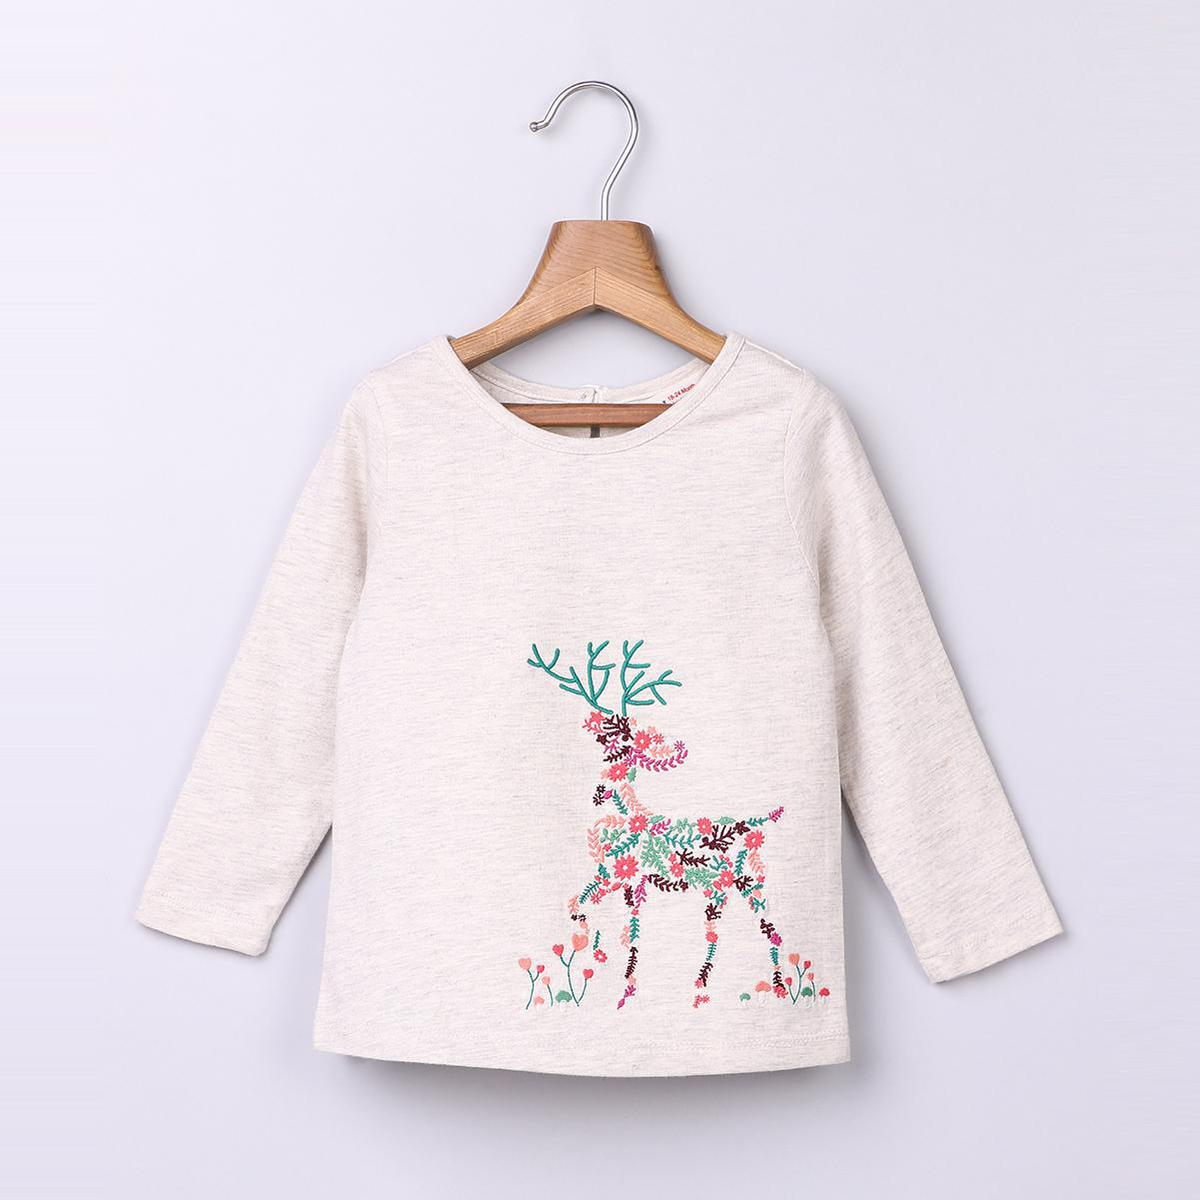 Beebay Reindeer Embroidered T-Shirt For Kids